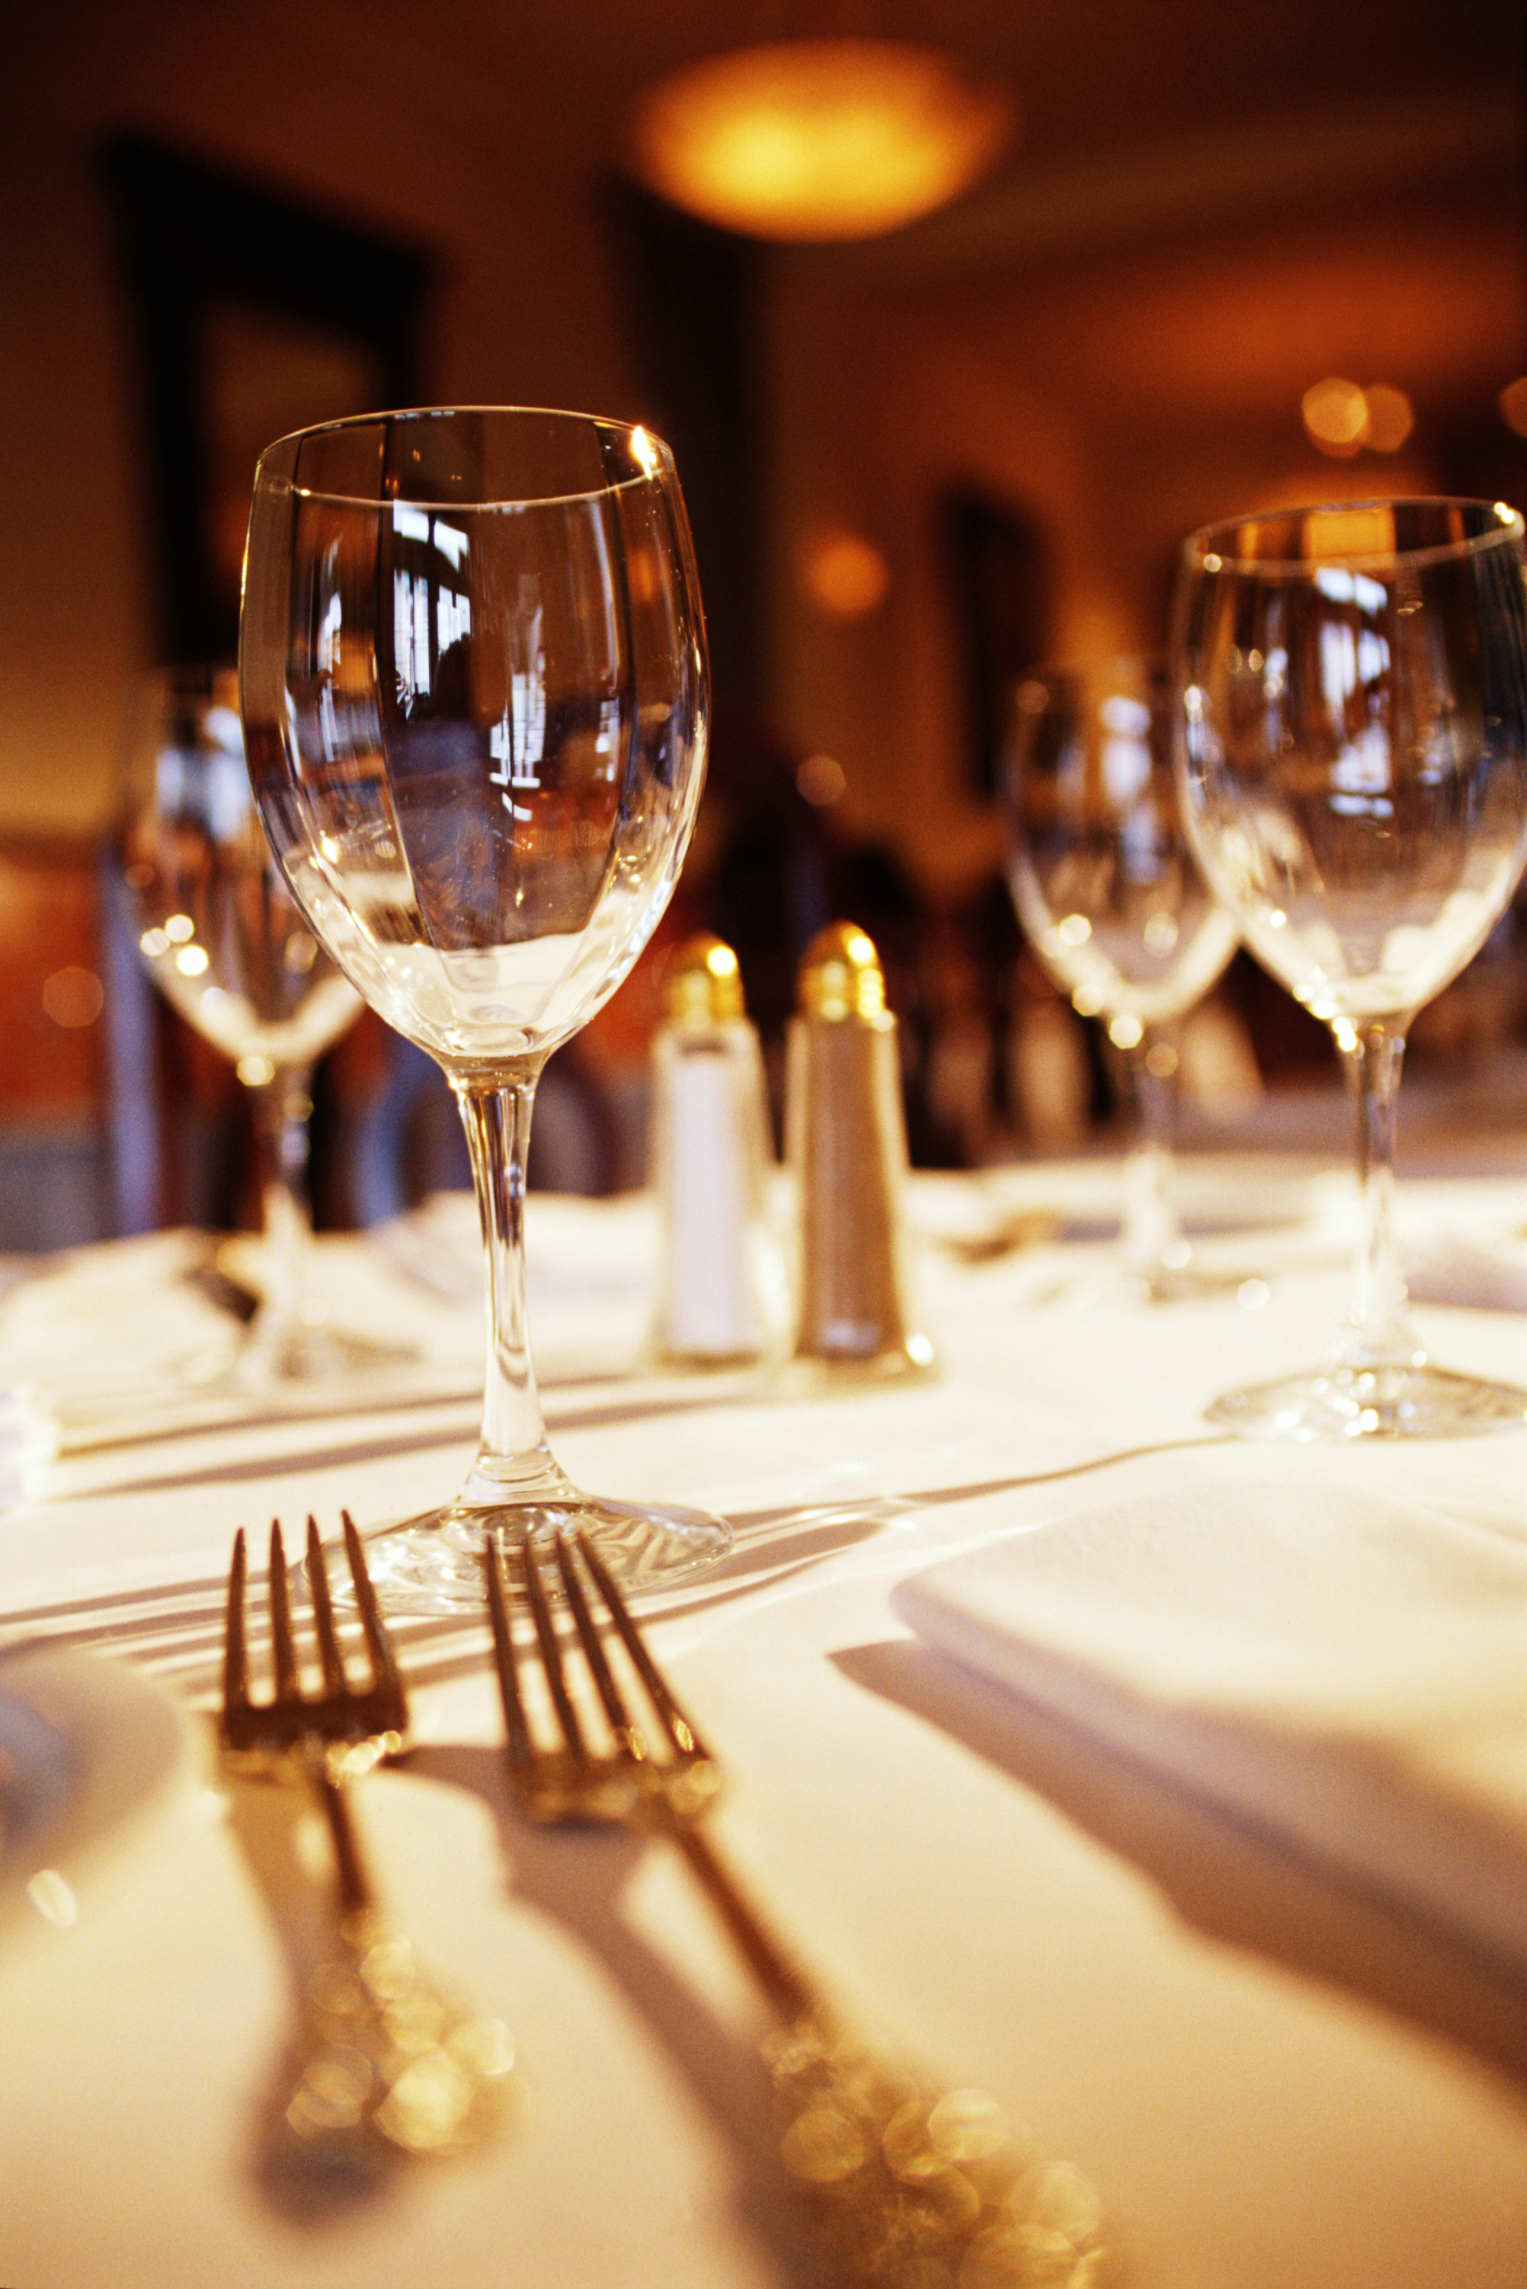 The Average Profit Margin for a Restaurant | Your Business